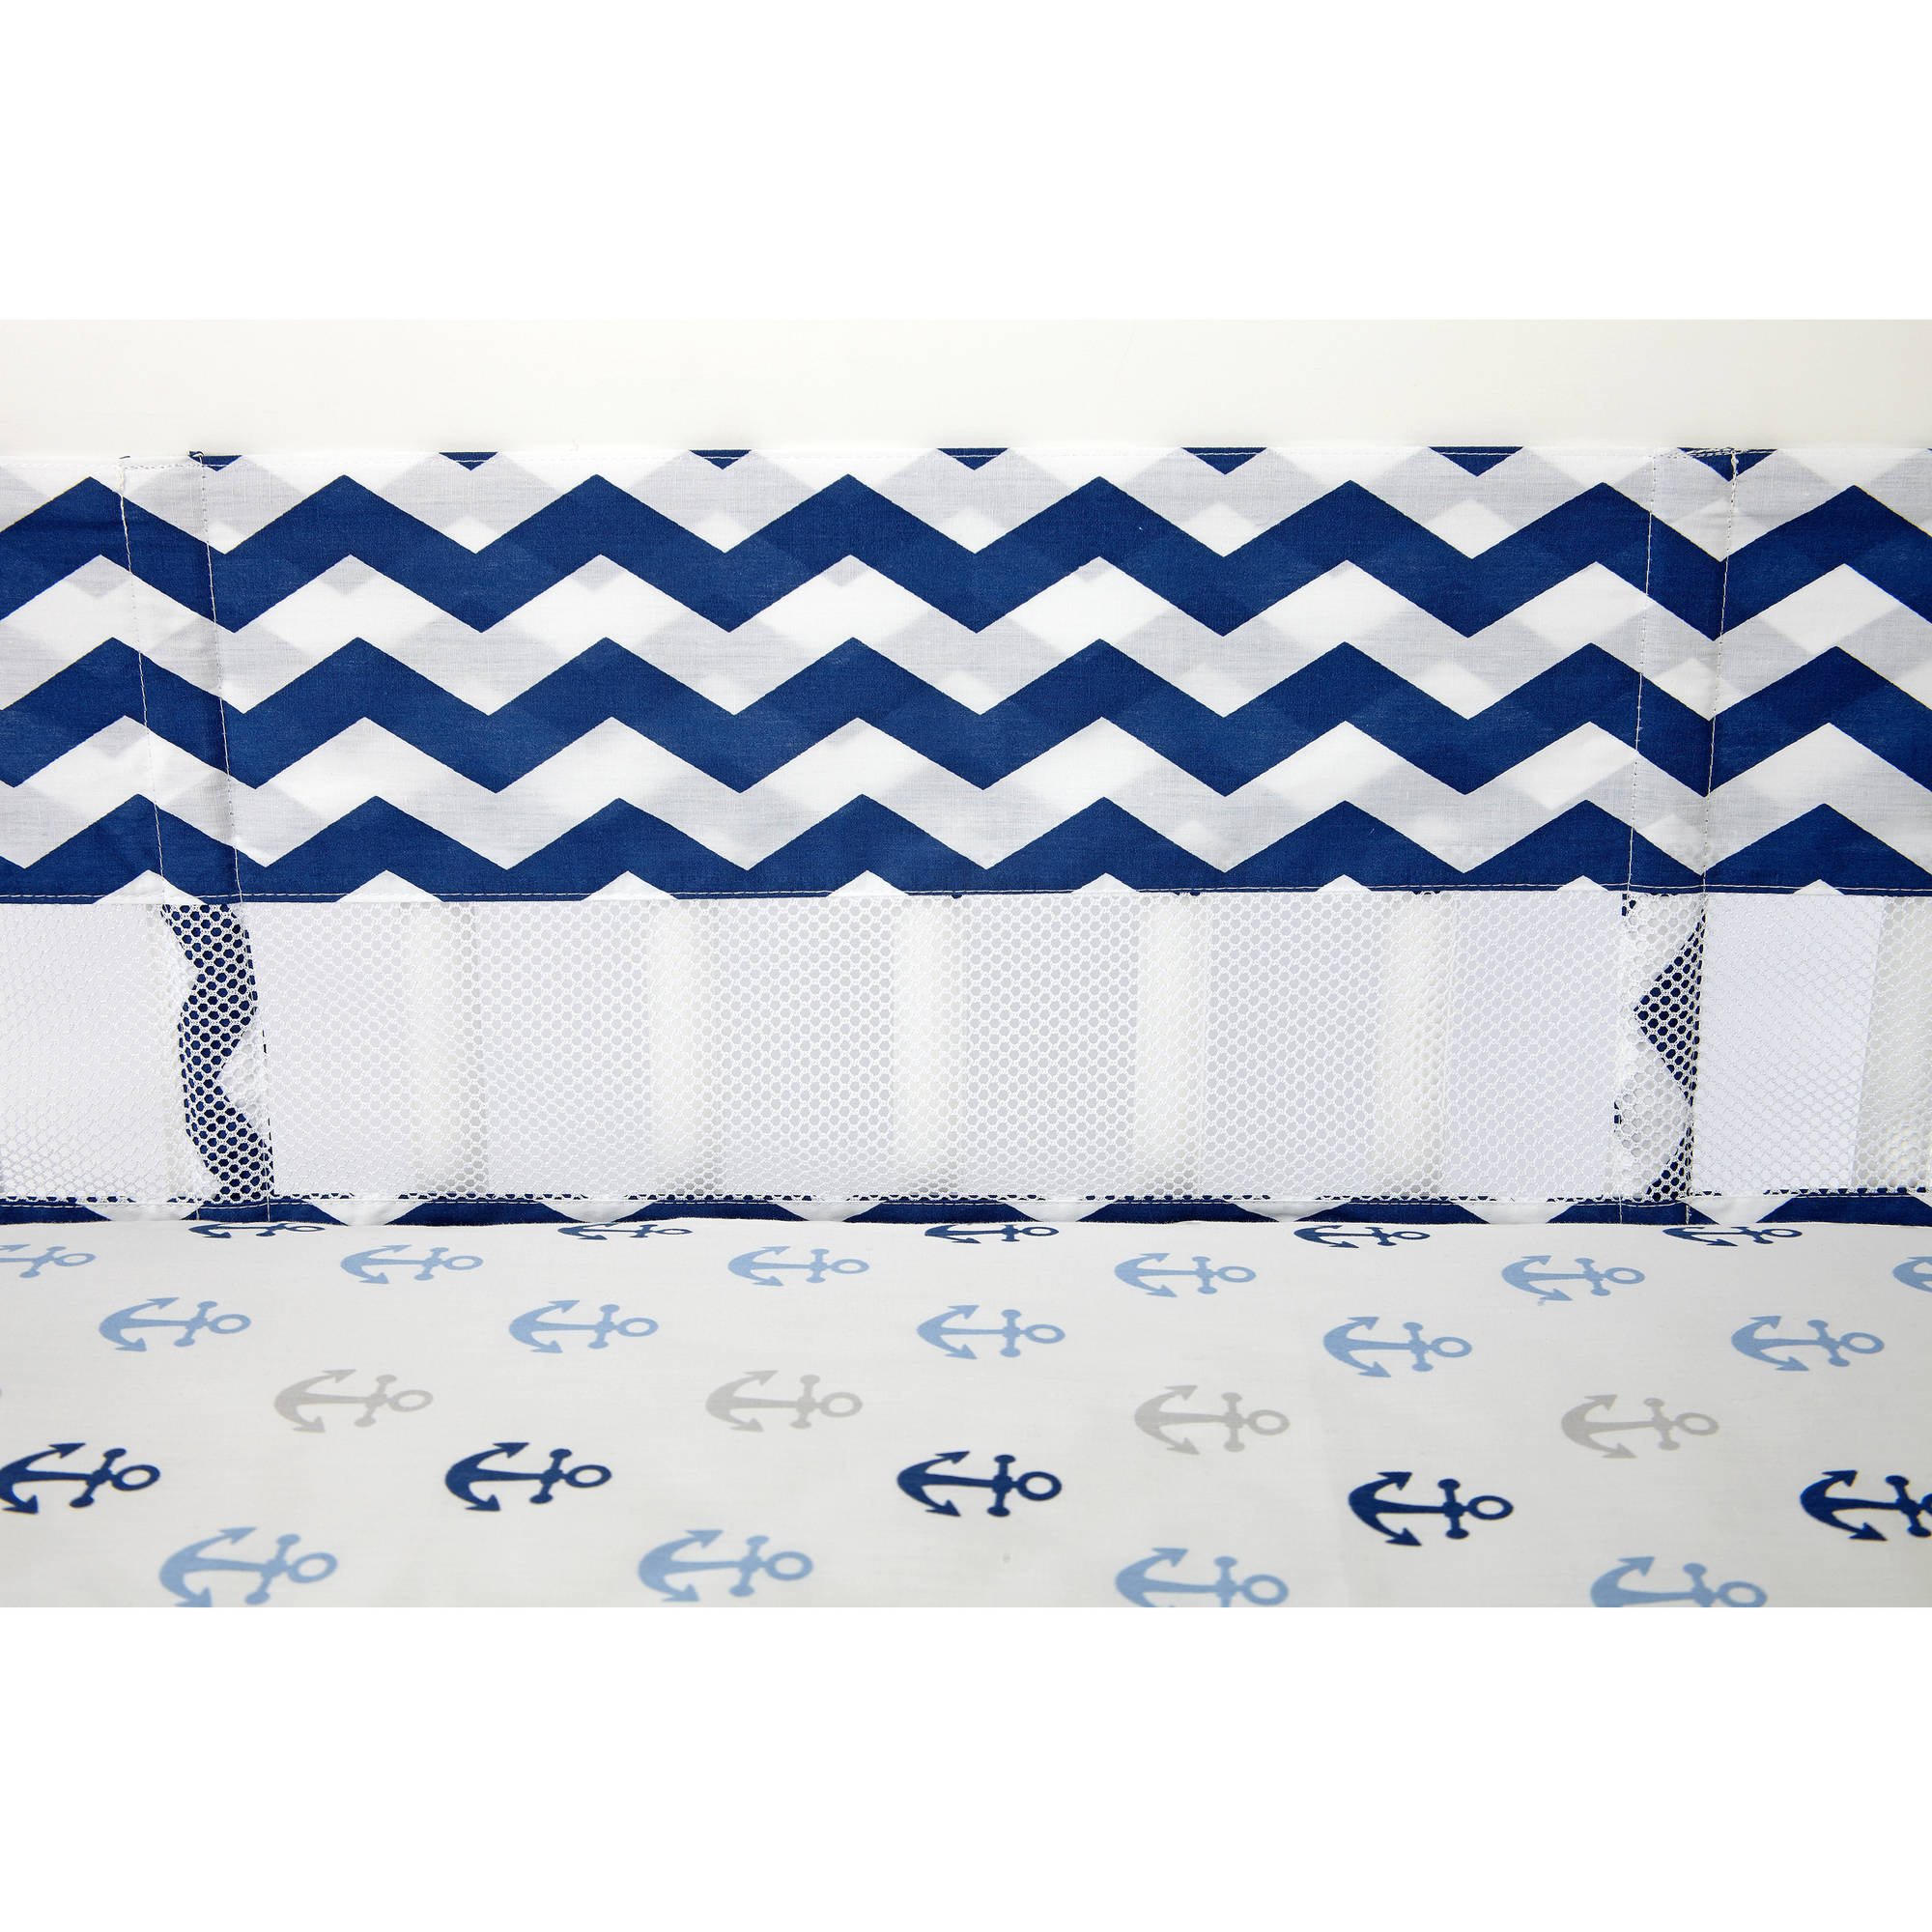 Little Love Secure Me Crib Liner, Navy Chevron Print